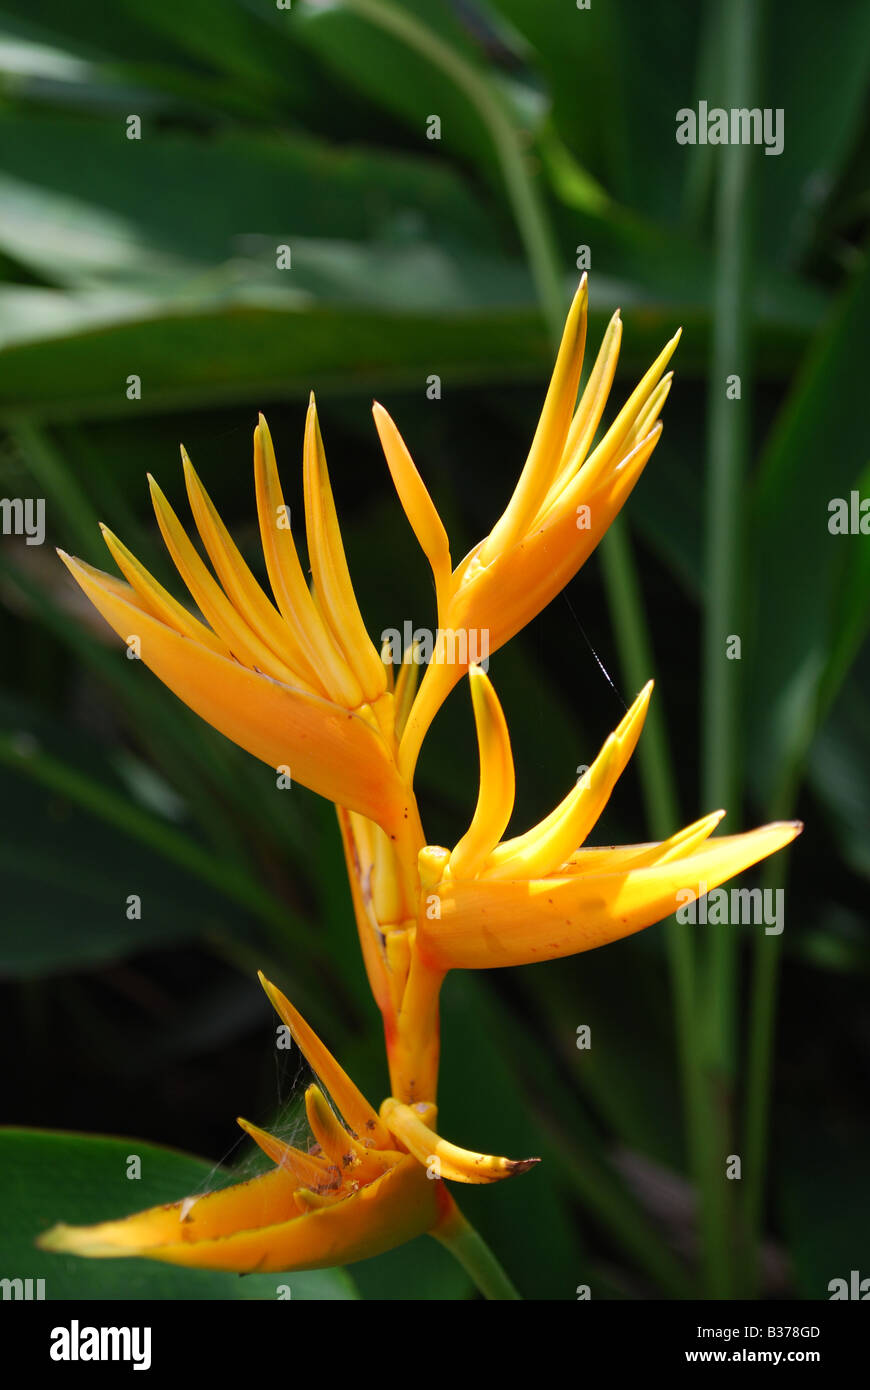 A heliconia plant in sunlight with green leafy background - Stock Image